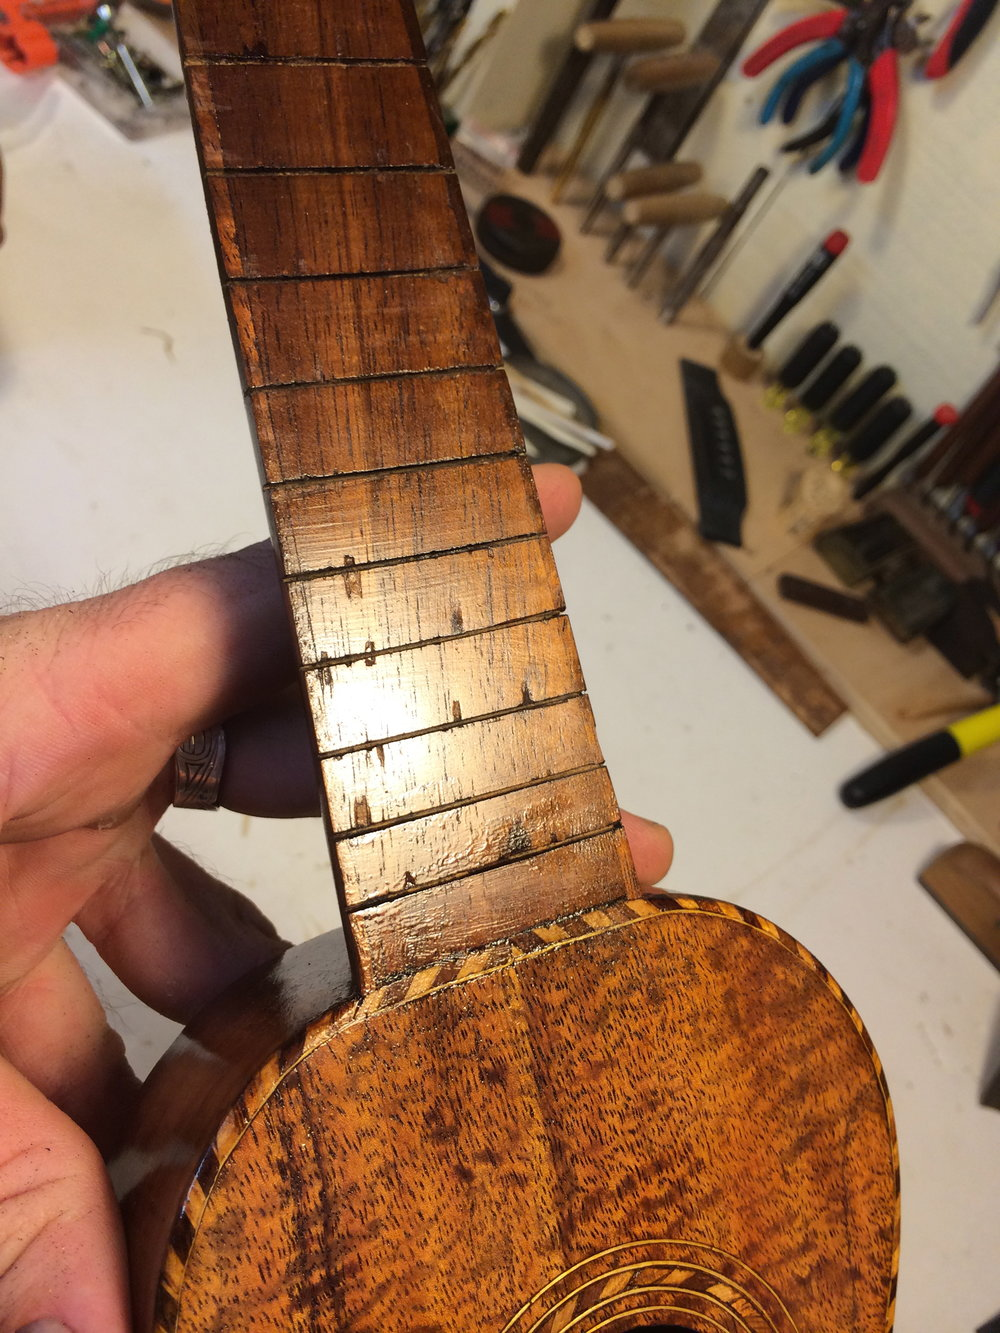 These early ukes often had light finish over the fingerboard, These little chipouts are going to disappear.